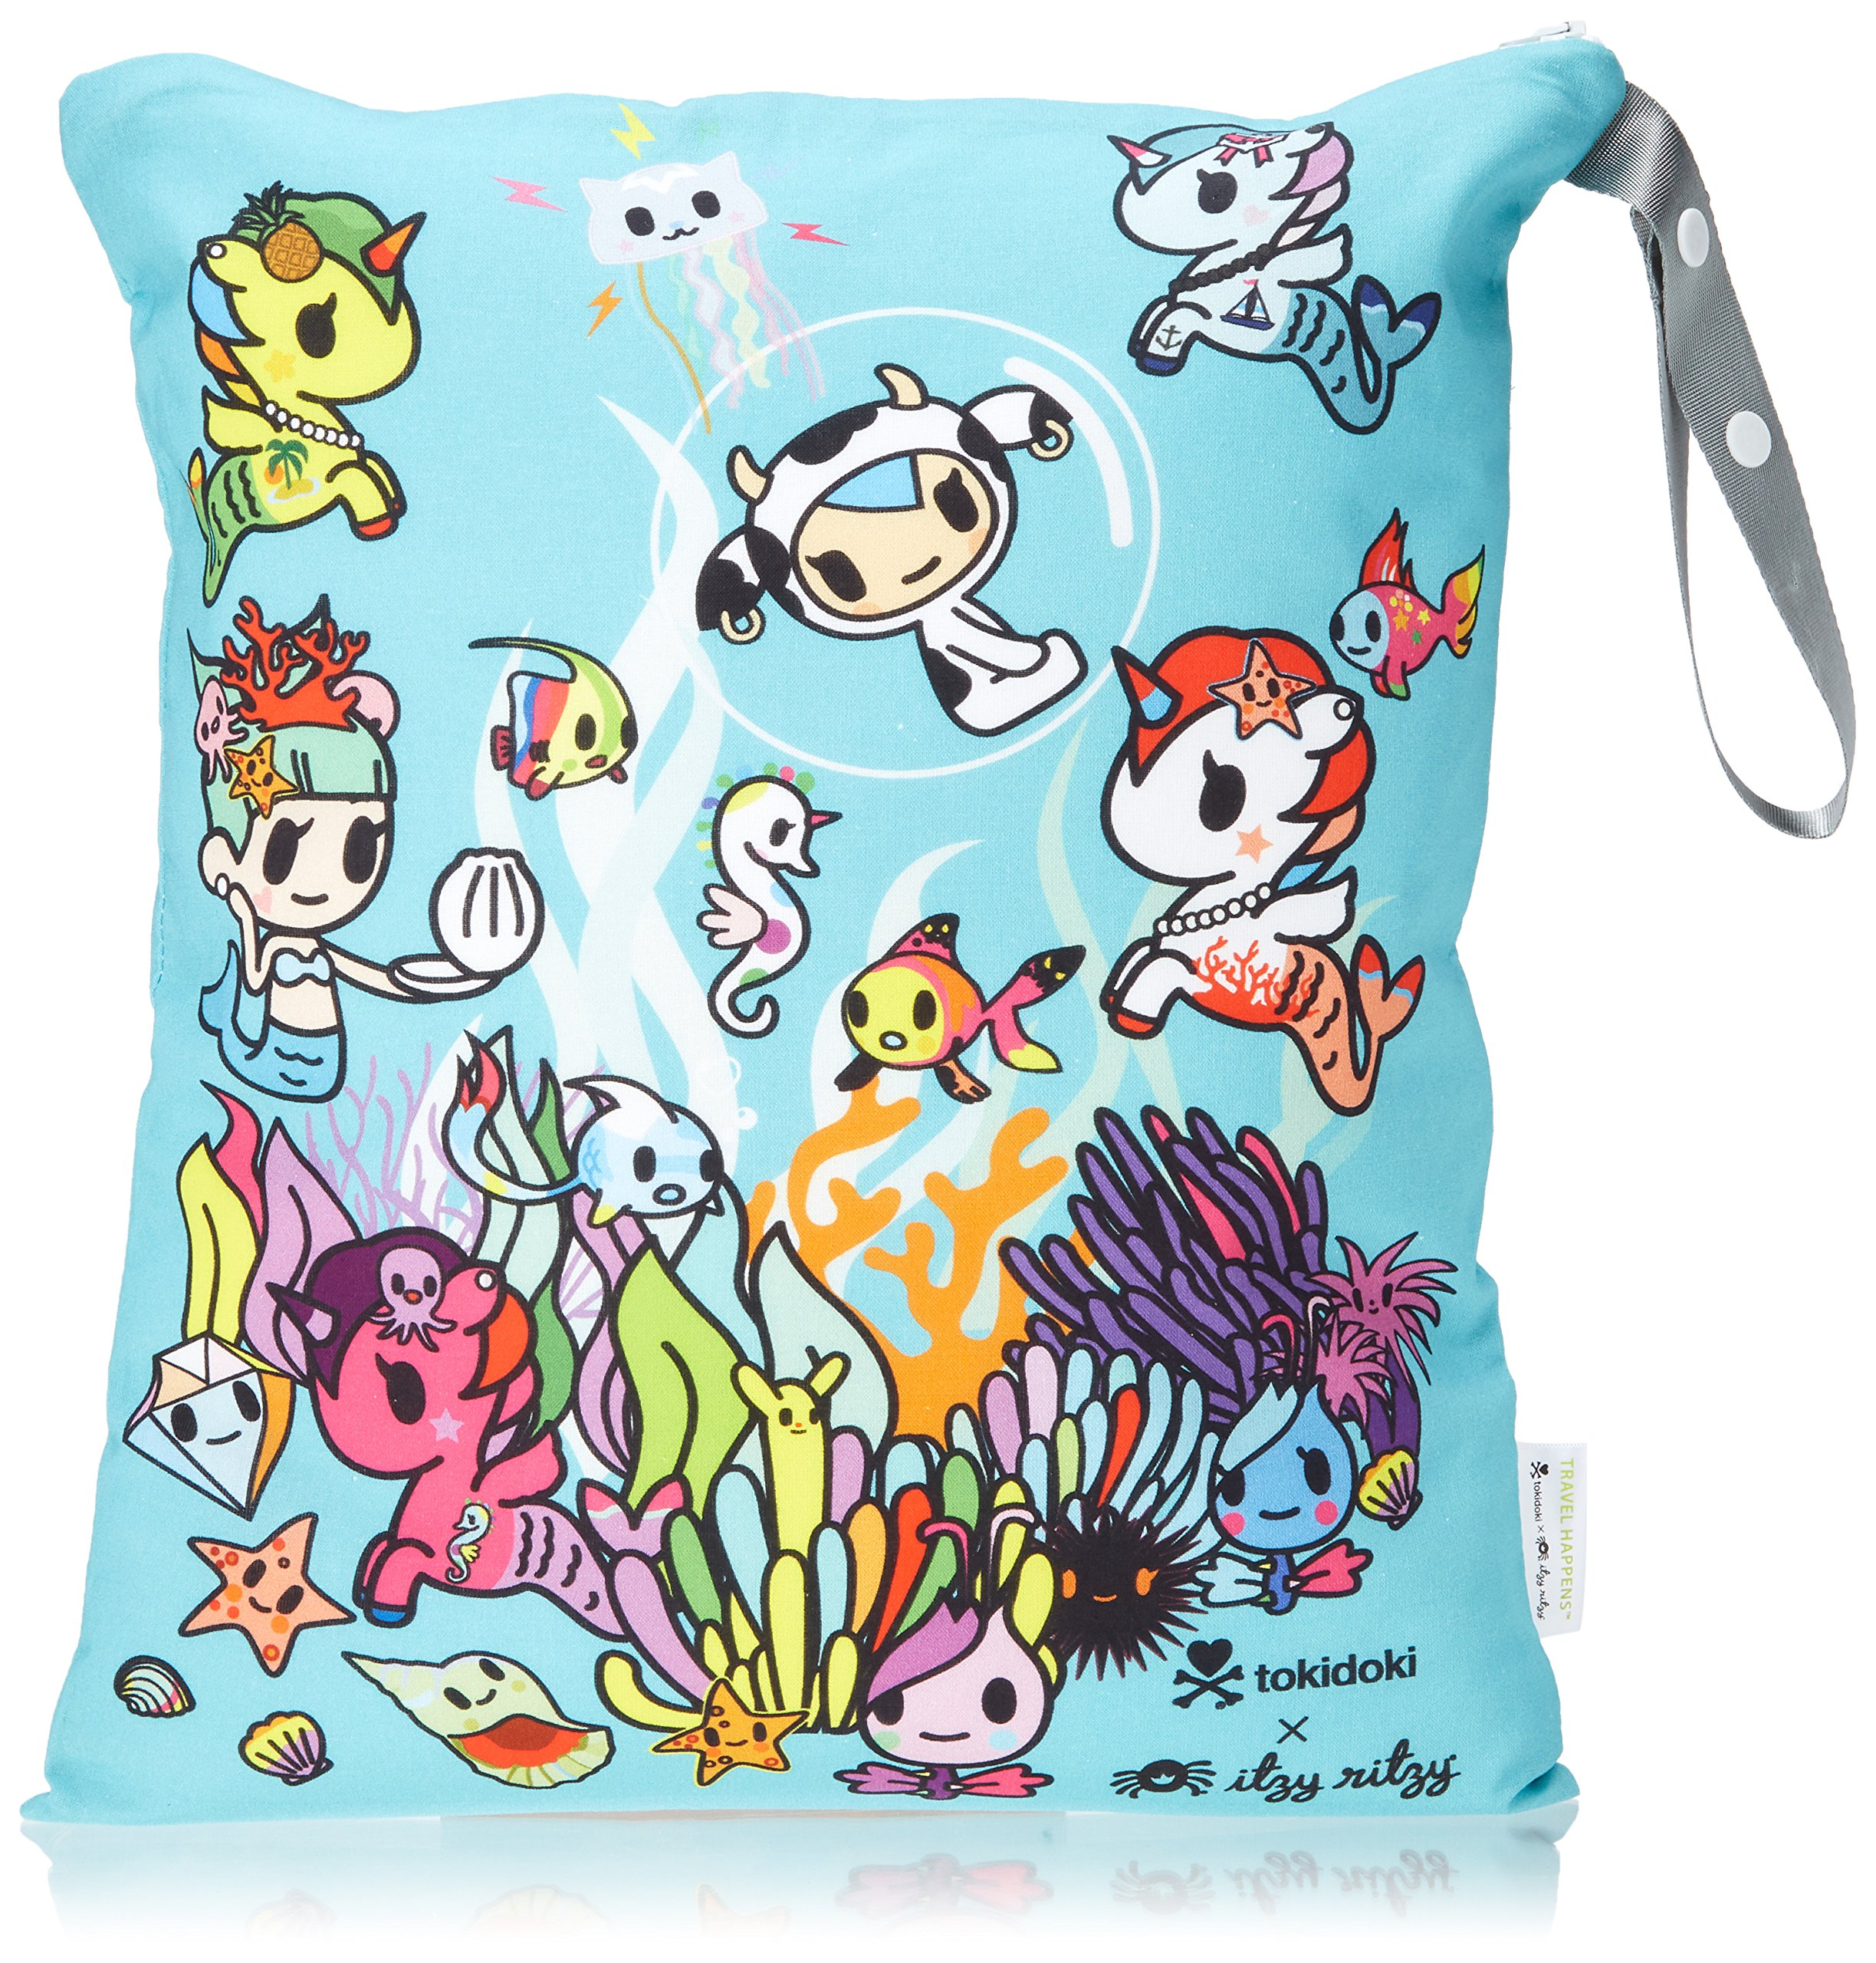 """Itzy Ritzy Wet Bag with Adjustable Handle – Washable & Reusable Wet Bag with Water Resistant Lining Ideal for Swimwear, Diapers, Gym Clothes & Toiletries; Measures 14"""" x 17"""", Underwater Adventure"""